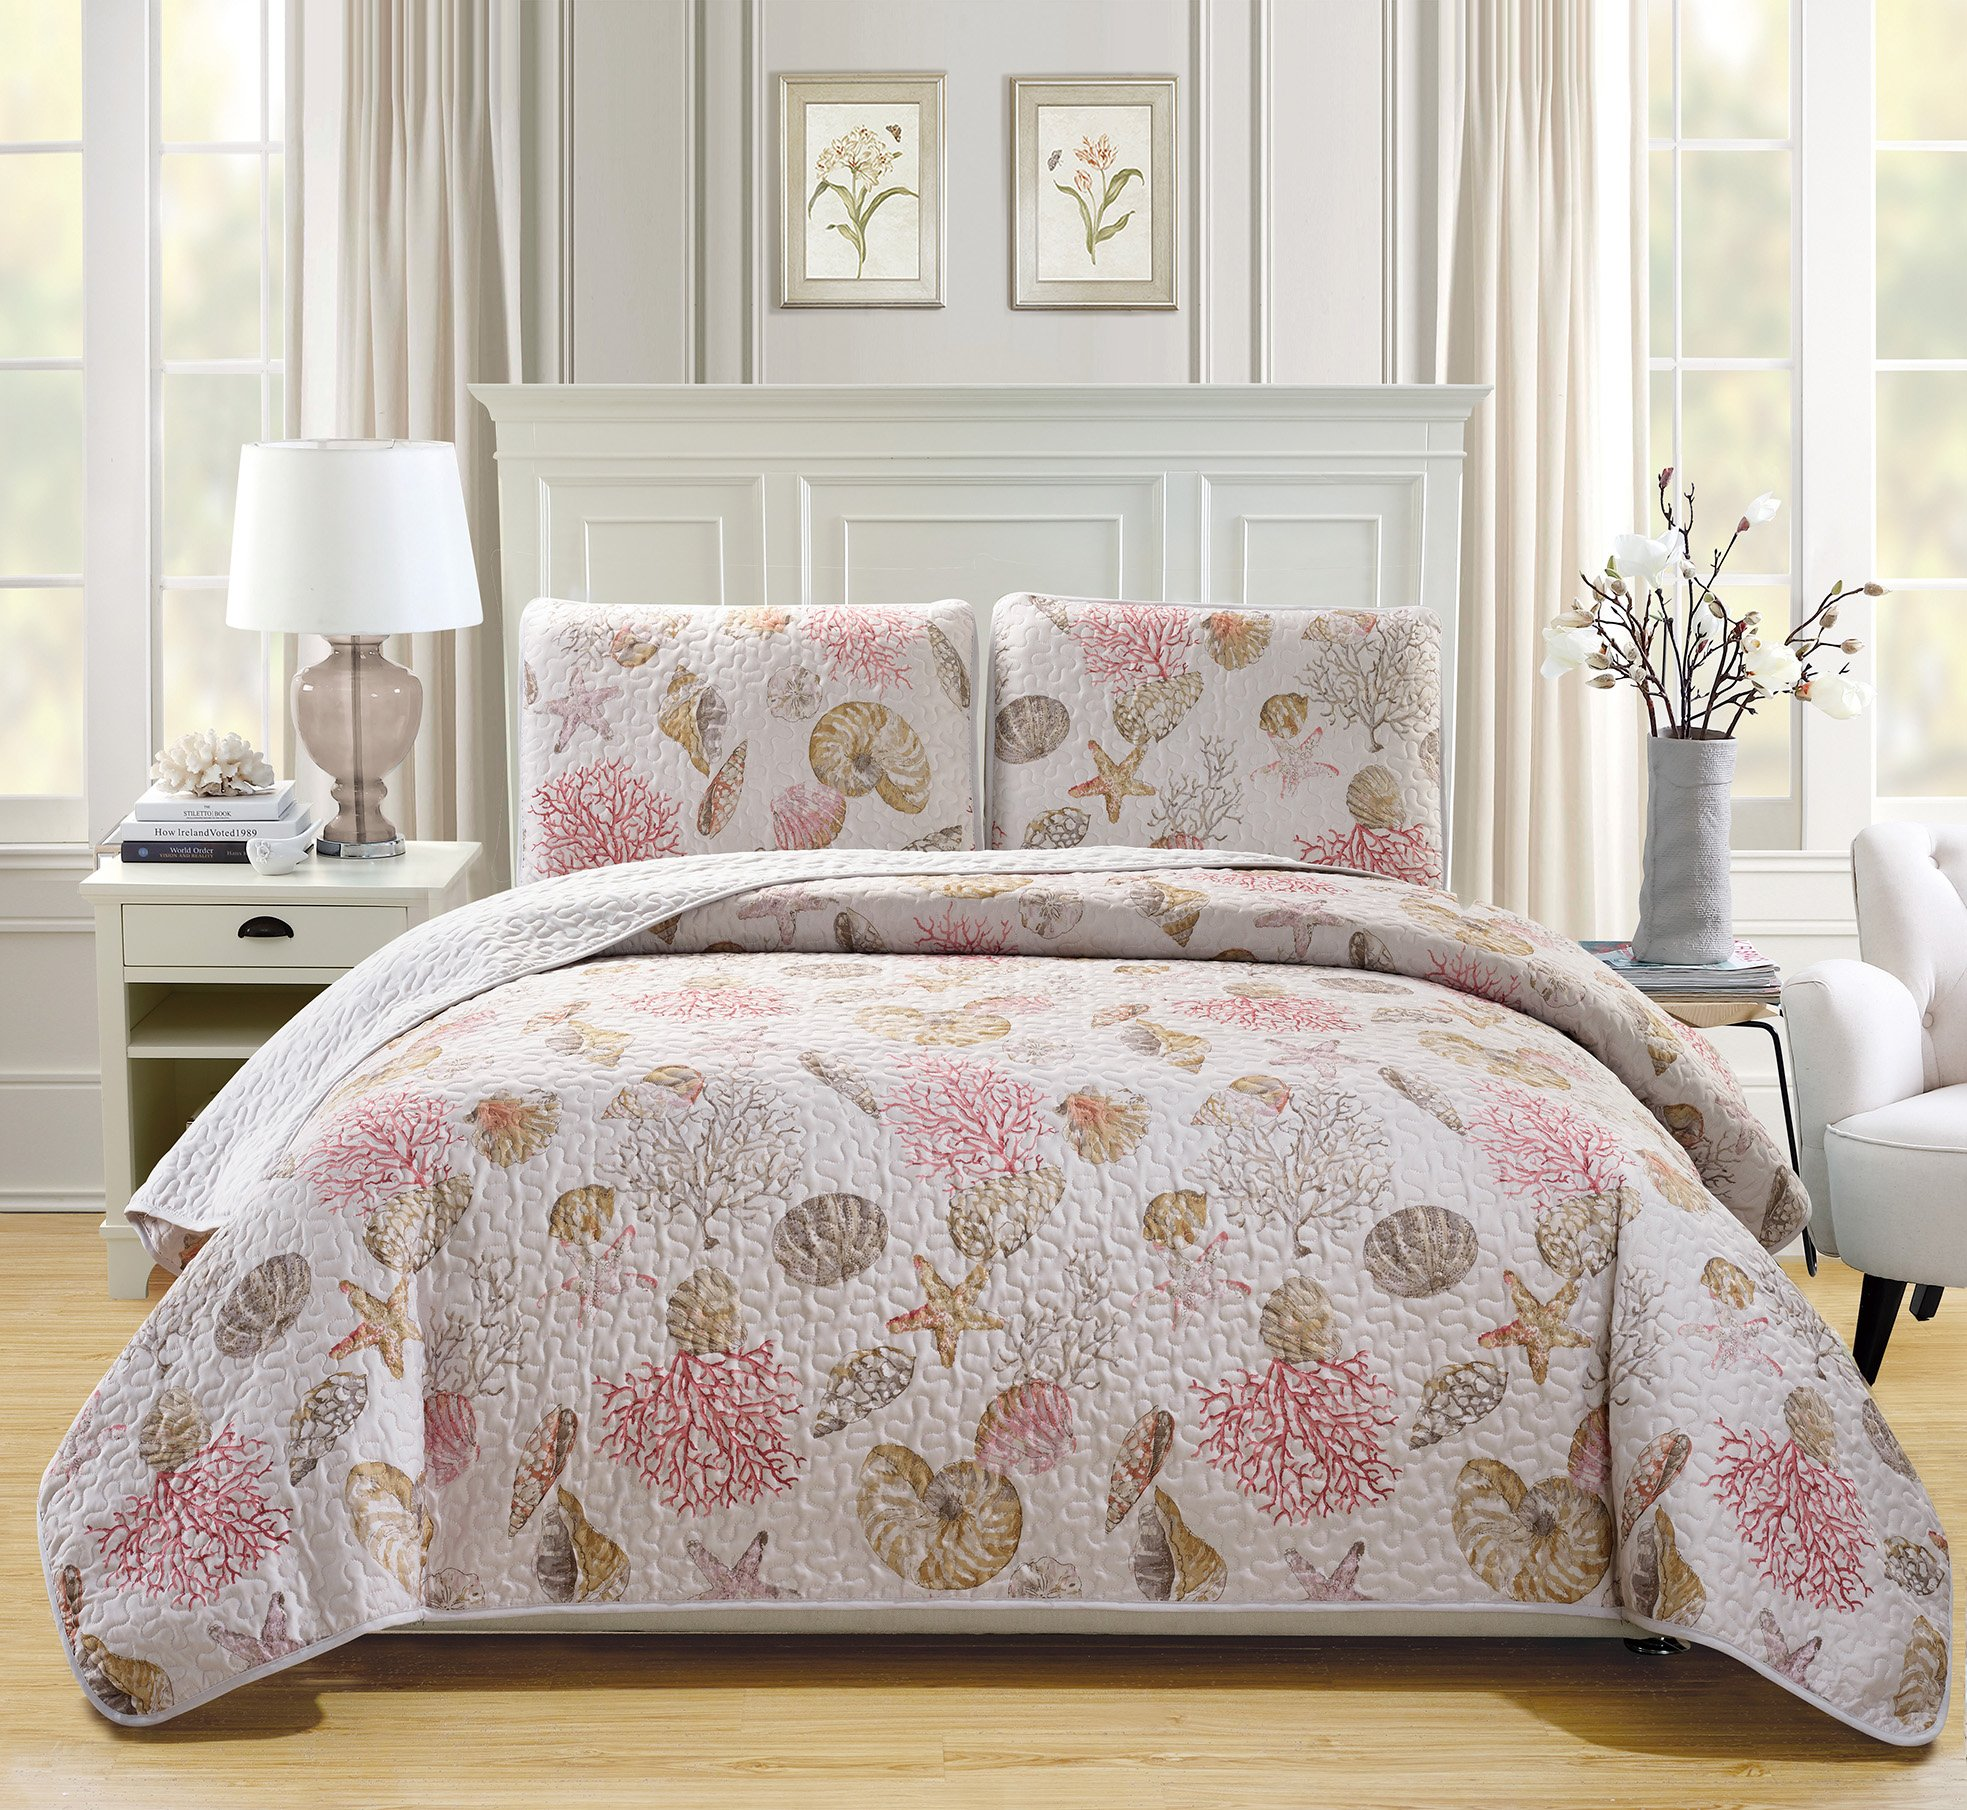 Mk Collection 3pc King Size Bedspread Coverlet Quilted Bedding Seashells Star Fish Coastal Beach Theme Sea Breeze Under The Sea Ocean Pink Beige Red # Seaside New by MK Home (Image #1)